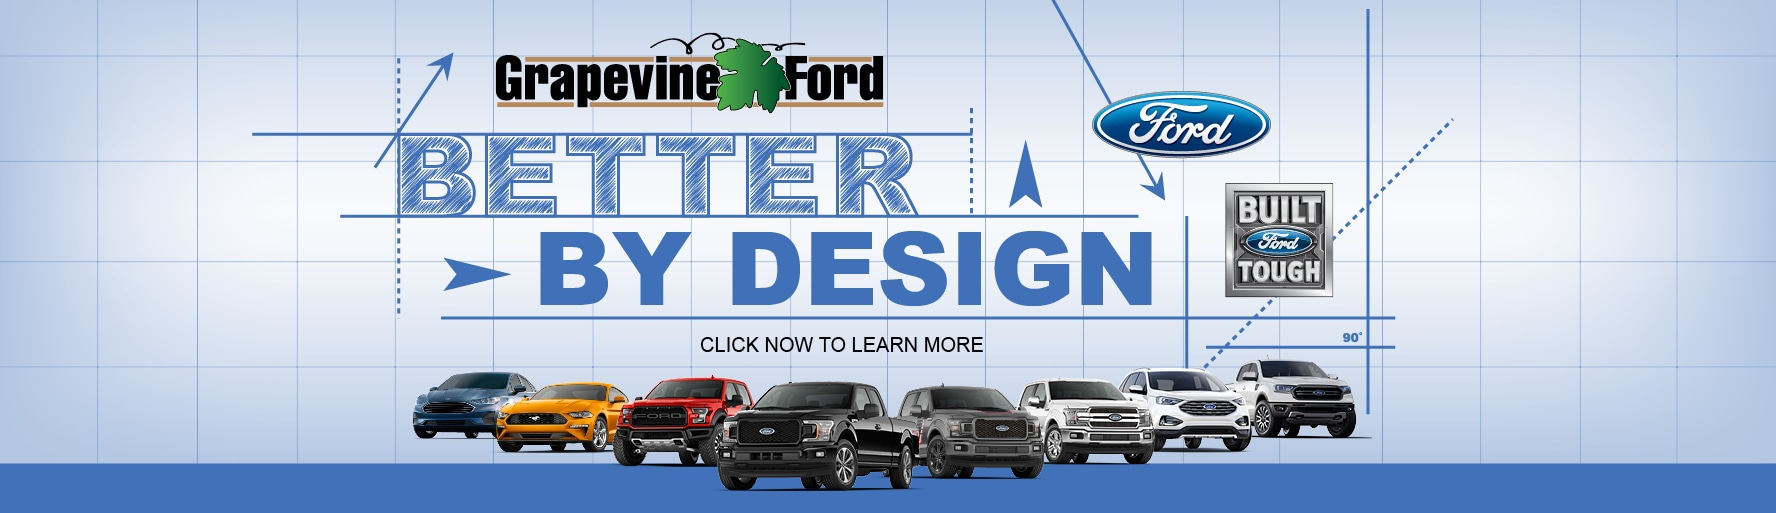 Ford Dealer Locator >> Grapevine Ford New Used Cars Grapevine Arlington Fort Worth Tx